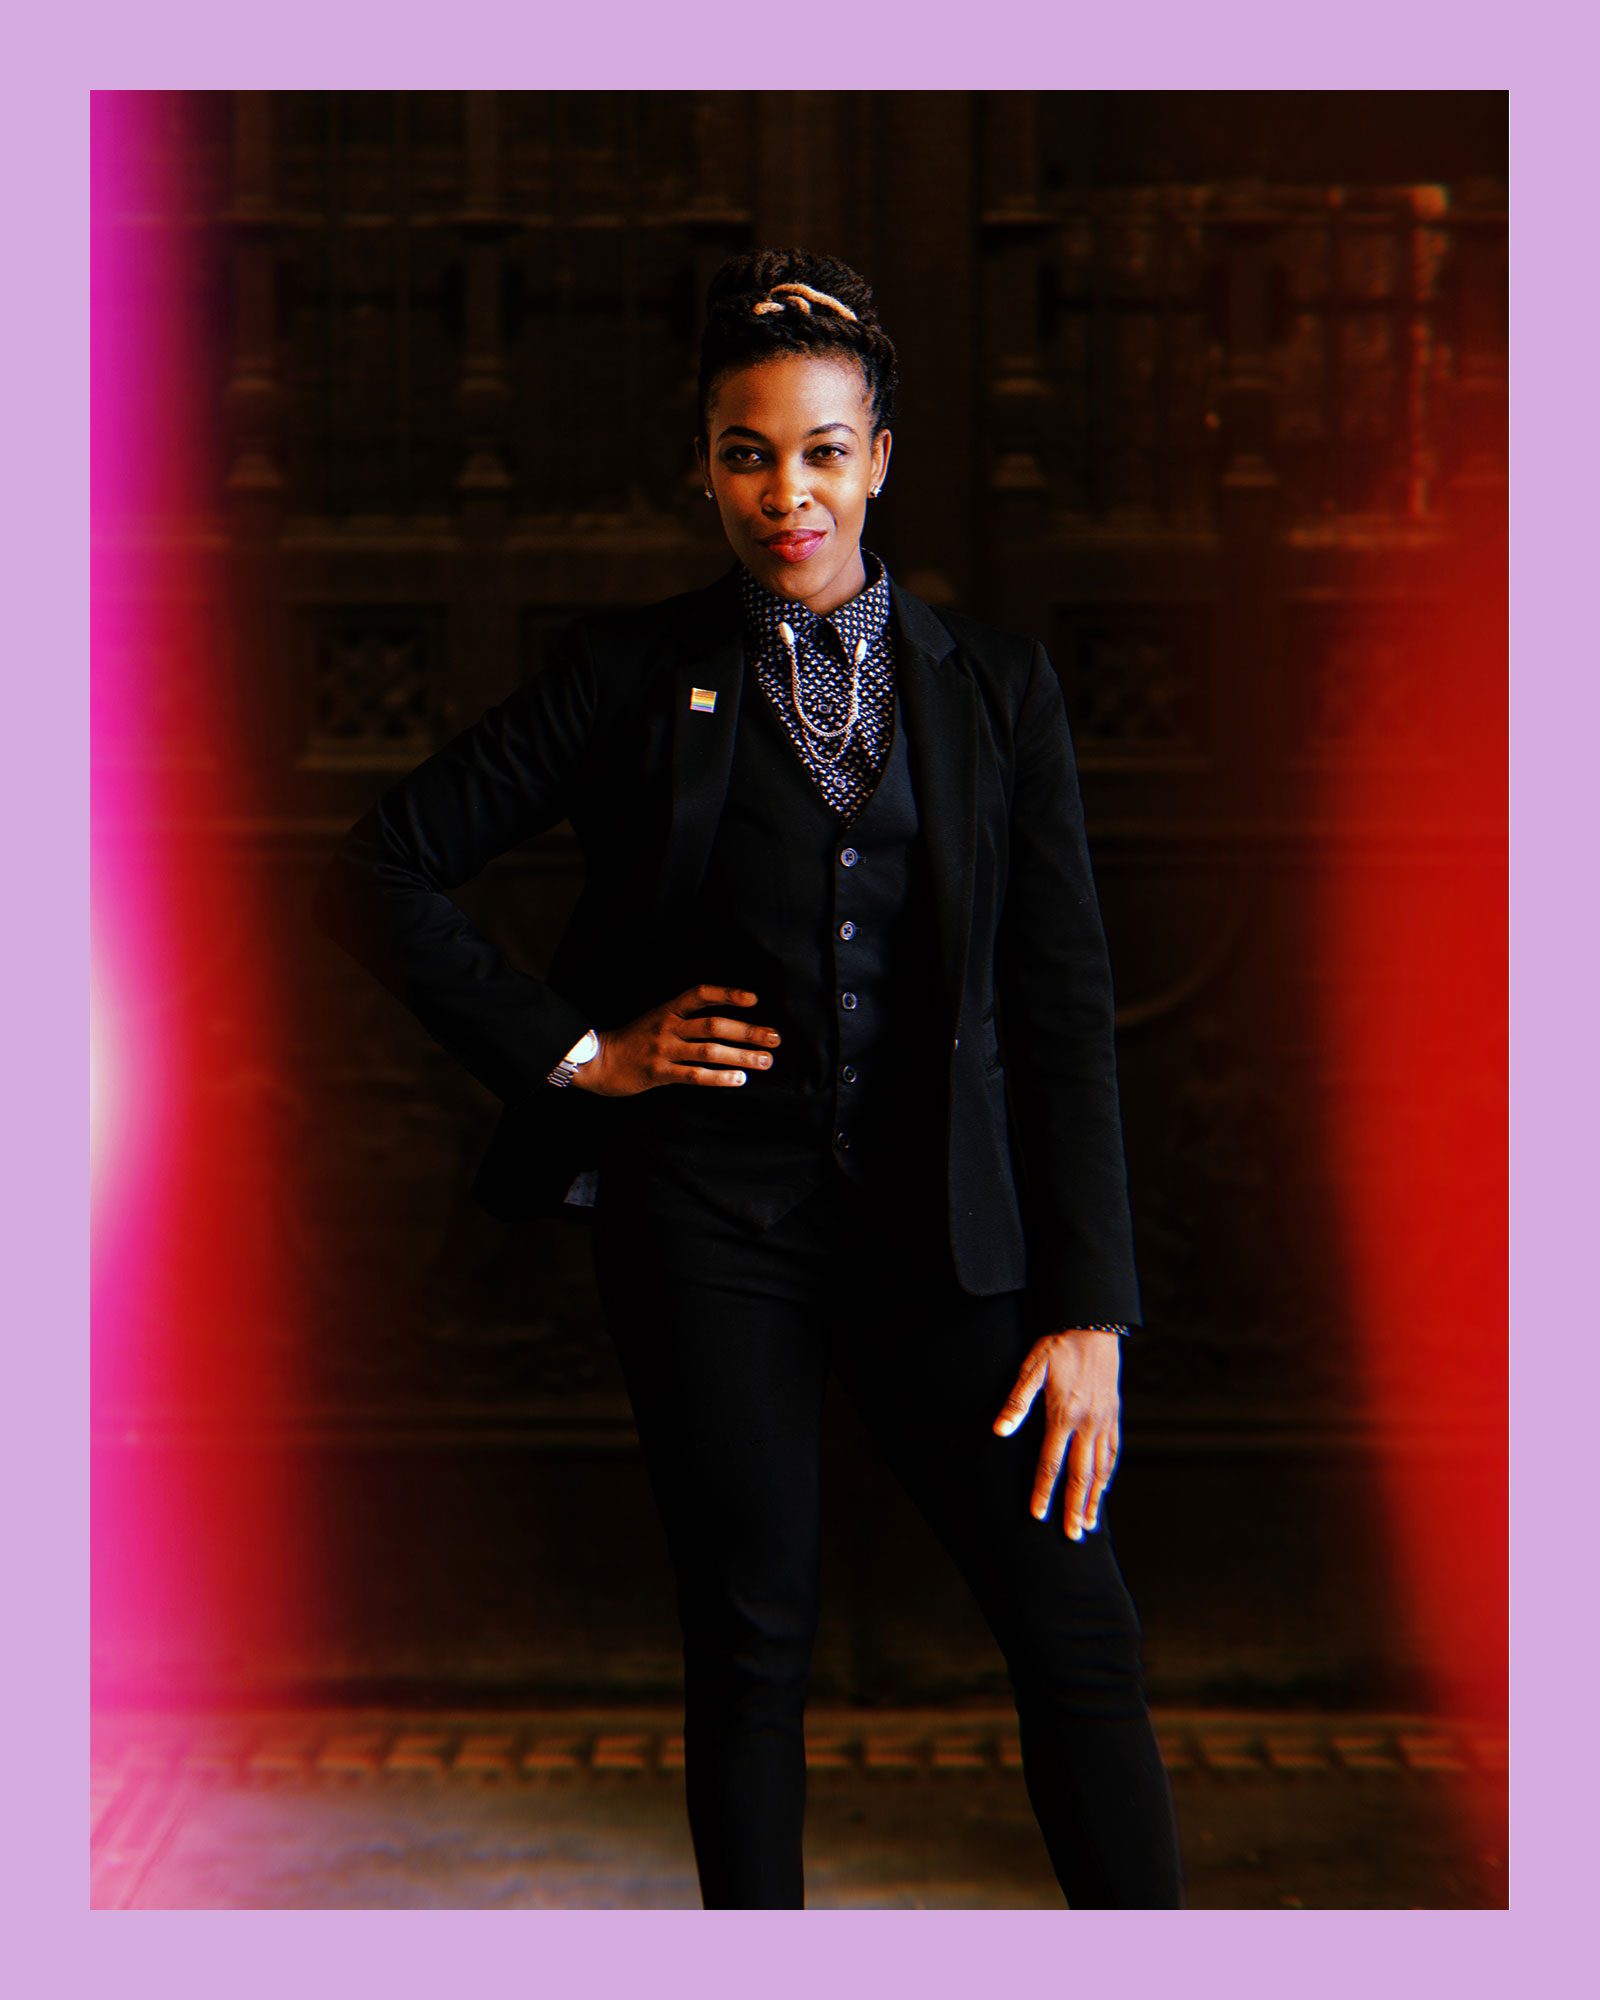 photo of Amber Hikes, a Black woman and Director of Diversity at the ACLU, wearing a 3-piece black suit and blue collared shirt, standing in a historical-looking building.